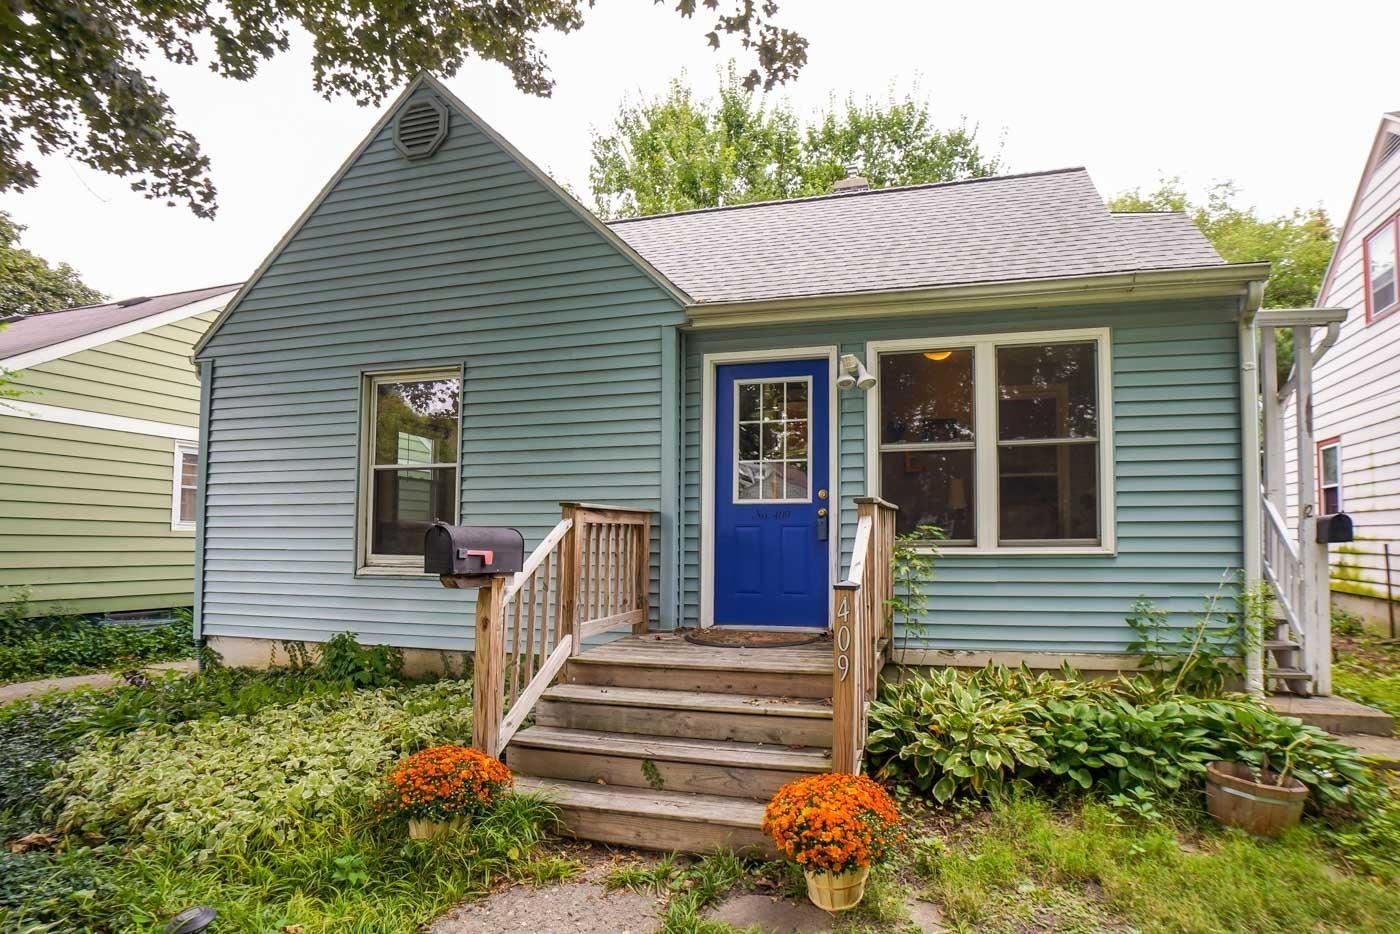 409 Stang St, Madison, WI 53704 - #: 1917787